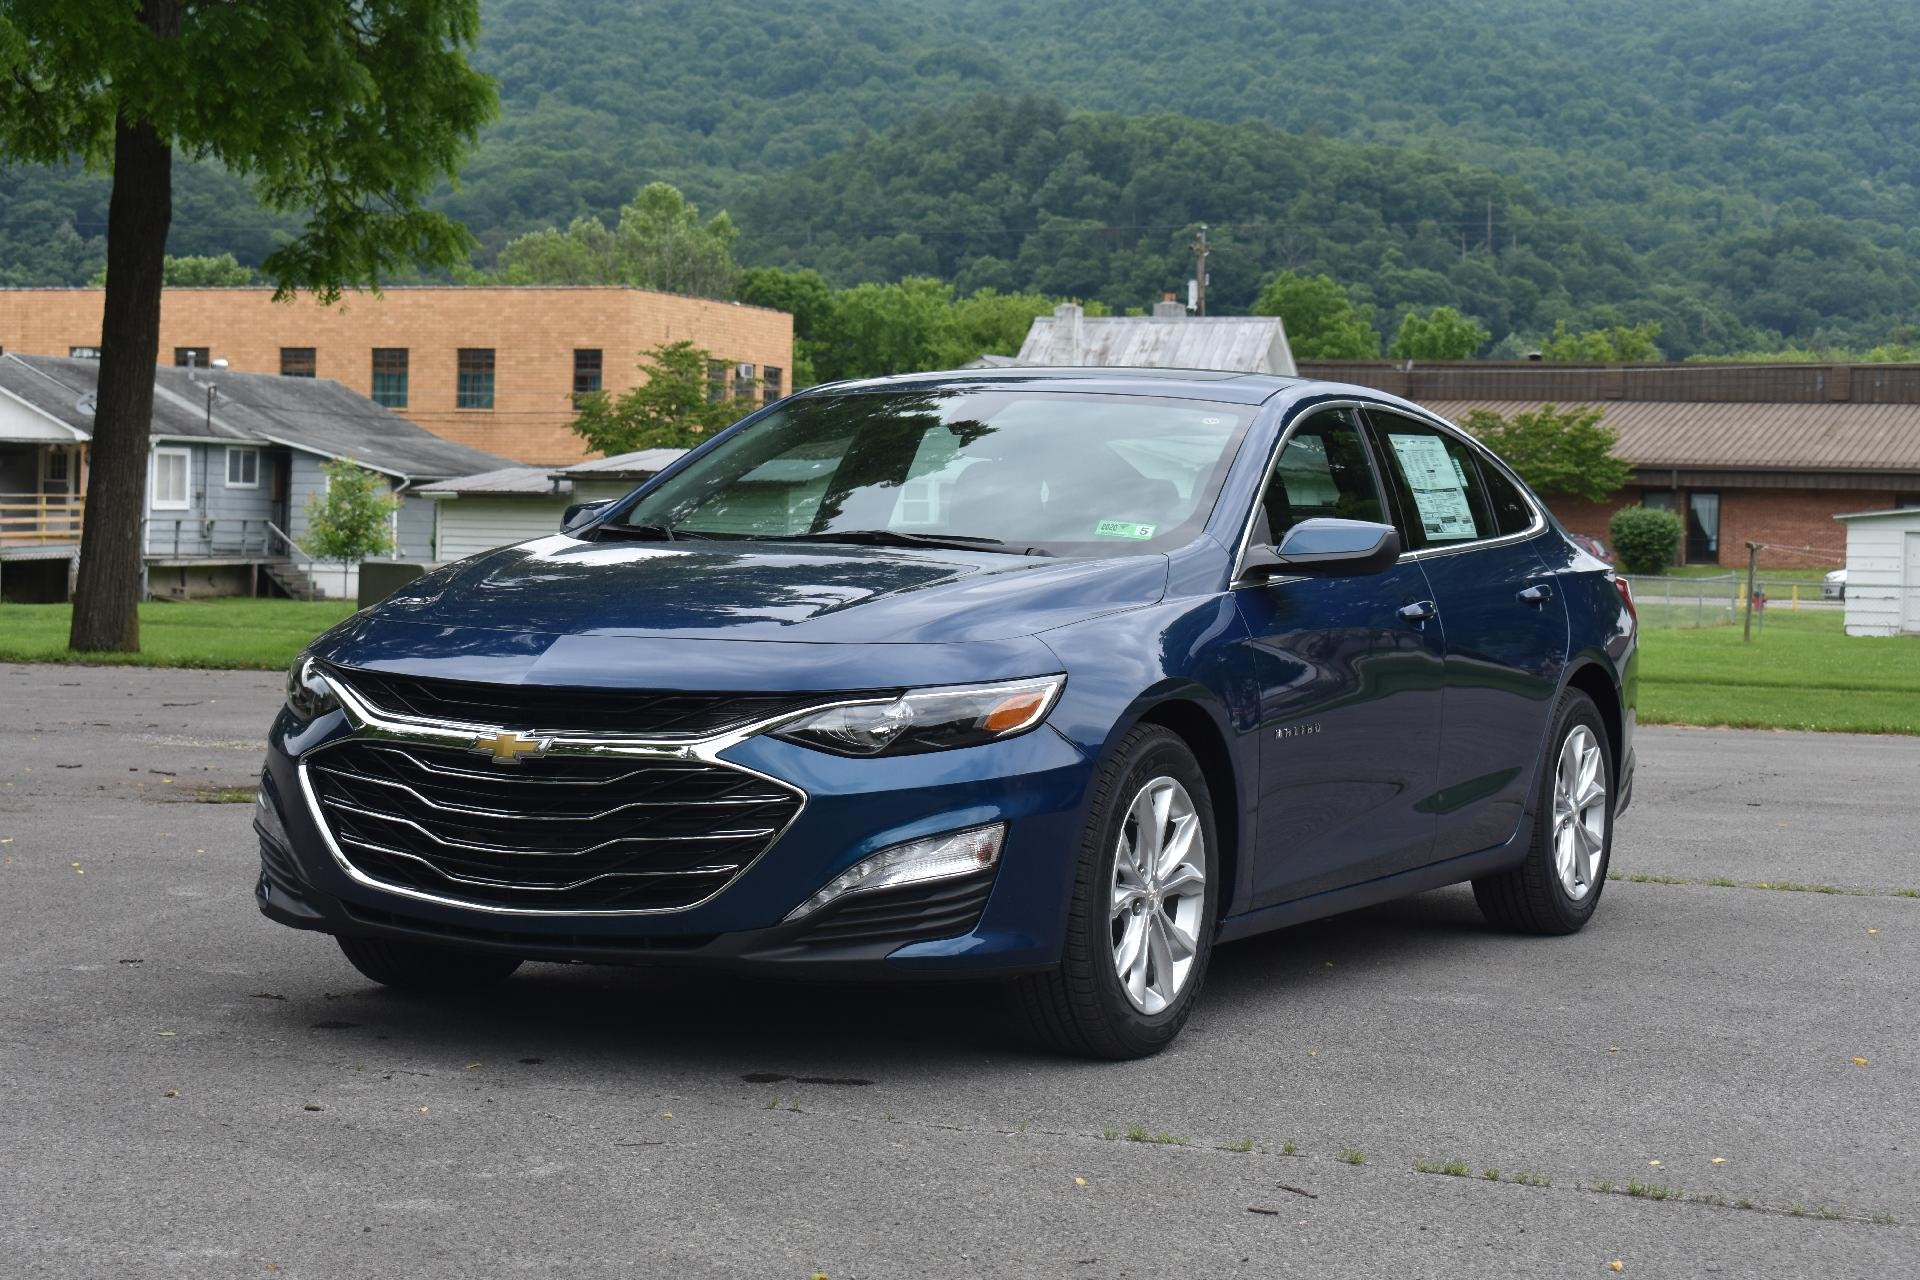 New 2019 Chevrolet-Malibu LS Malibu LS for sale $23,220 at M and V Leasing in Brooklyn NY 11223 1